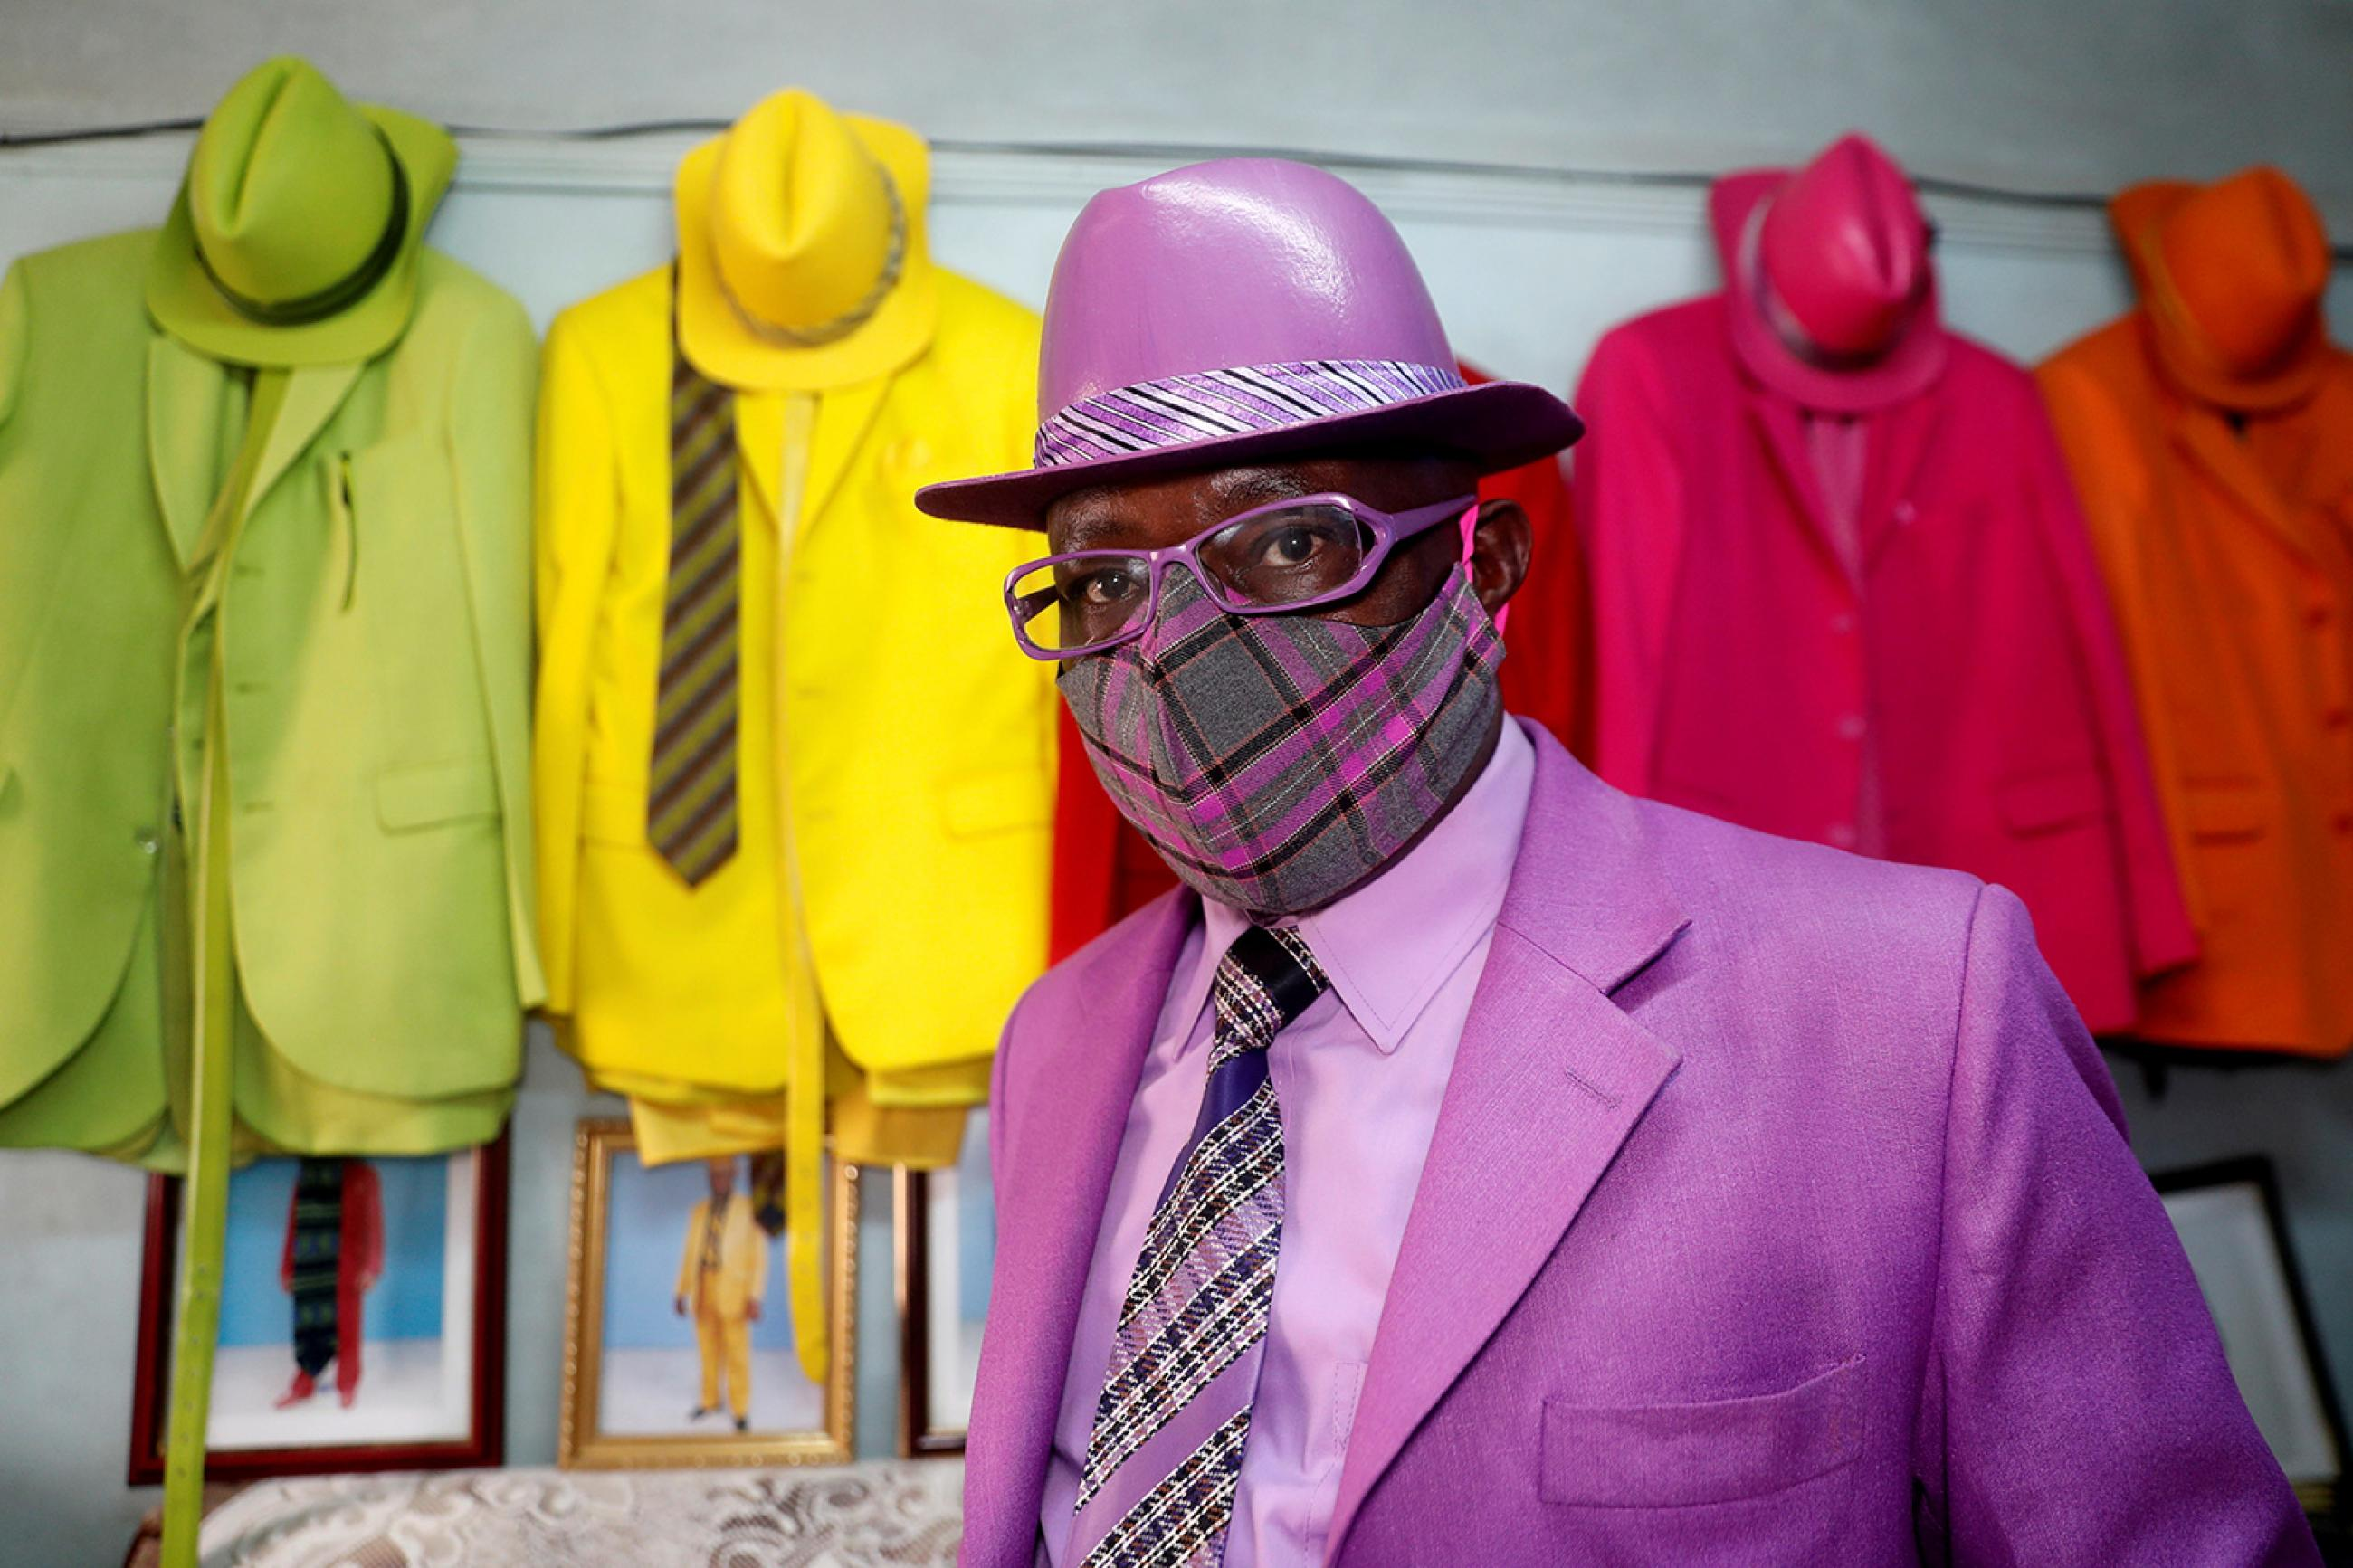 The author argues for pandemic responses that do not sacrifice long-term health projects—just as Kenyan fashionista James Maina Mwangi, on July 30, 2020, blends 160 stylish suits with sensible masks. Picture shows James smartly dressed in a well-appointed purple suit with a matching mask. In the background are striking blue and orange and green suits hanging on the wall. REUTERS/Thomas Mukoya